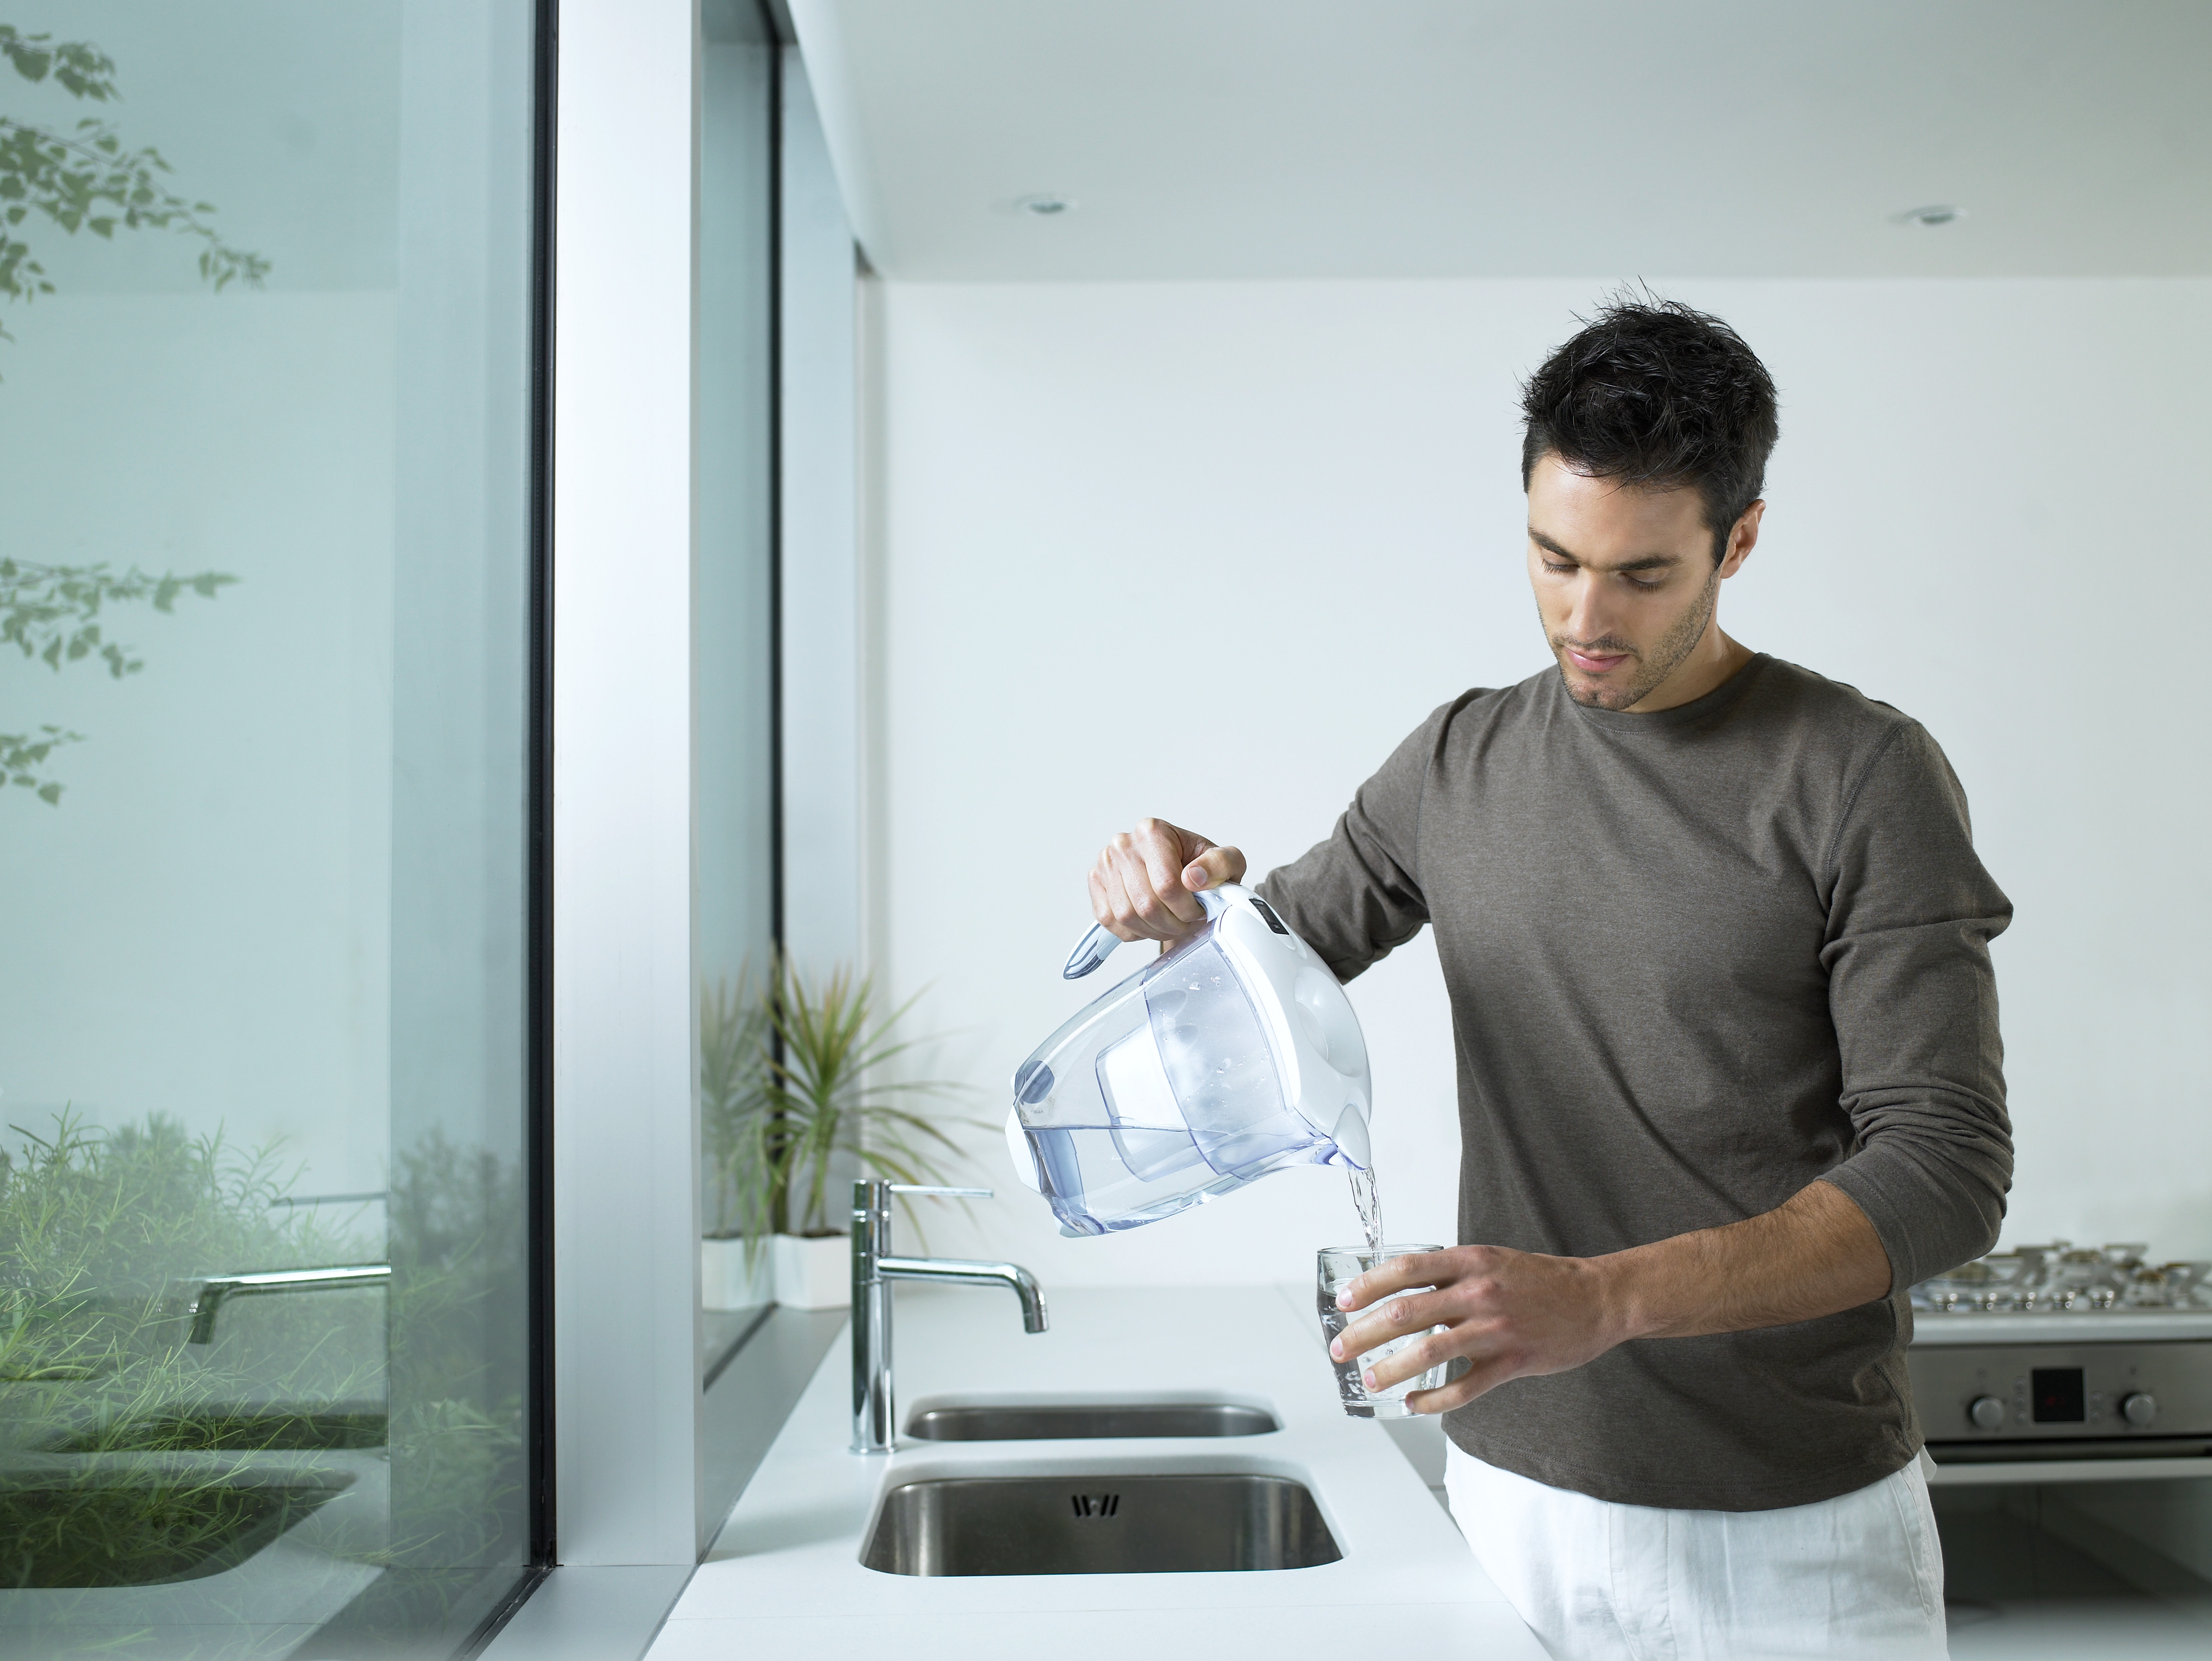 Why Is There Algae in My Brita Filter? | Hunker